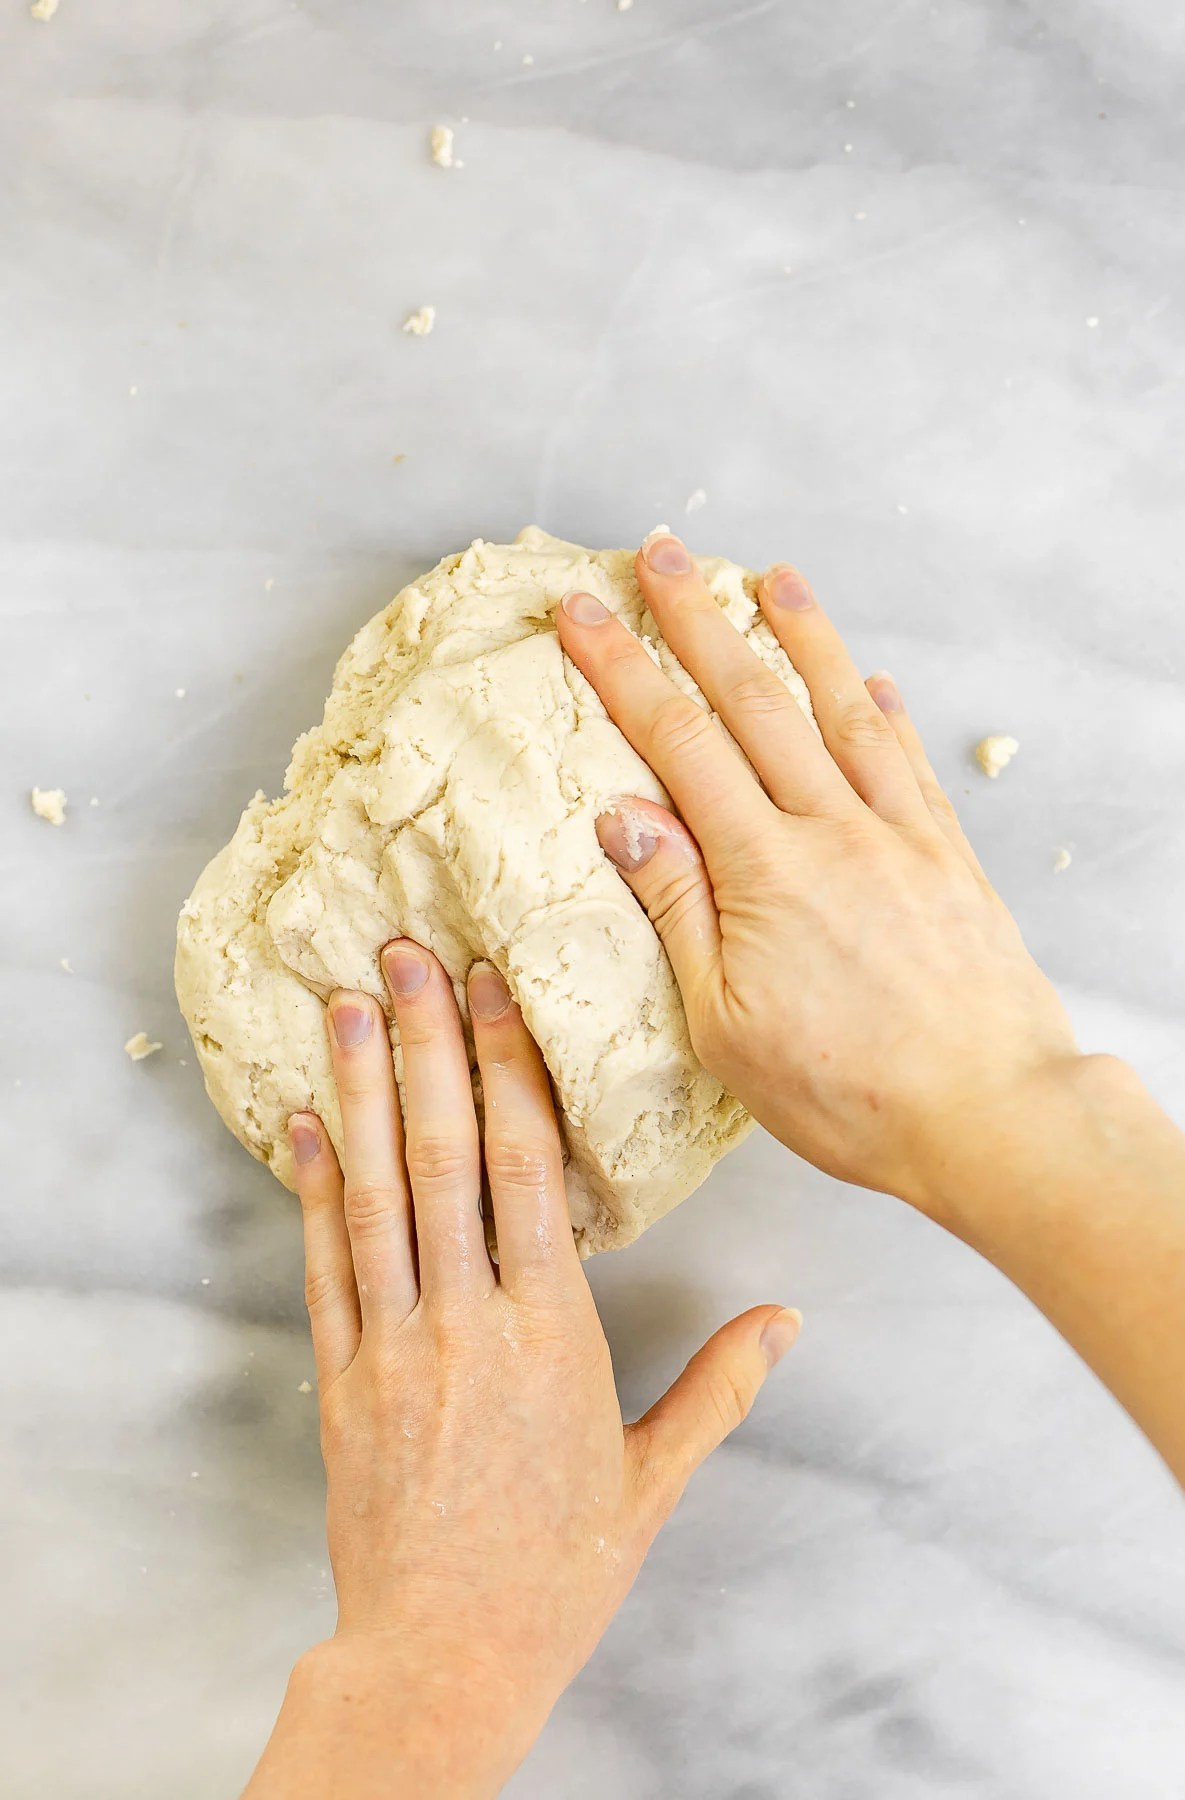 Kneading the bagel dough.